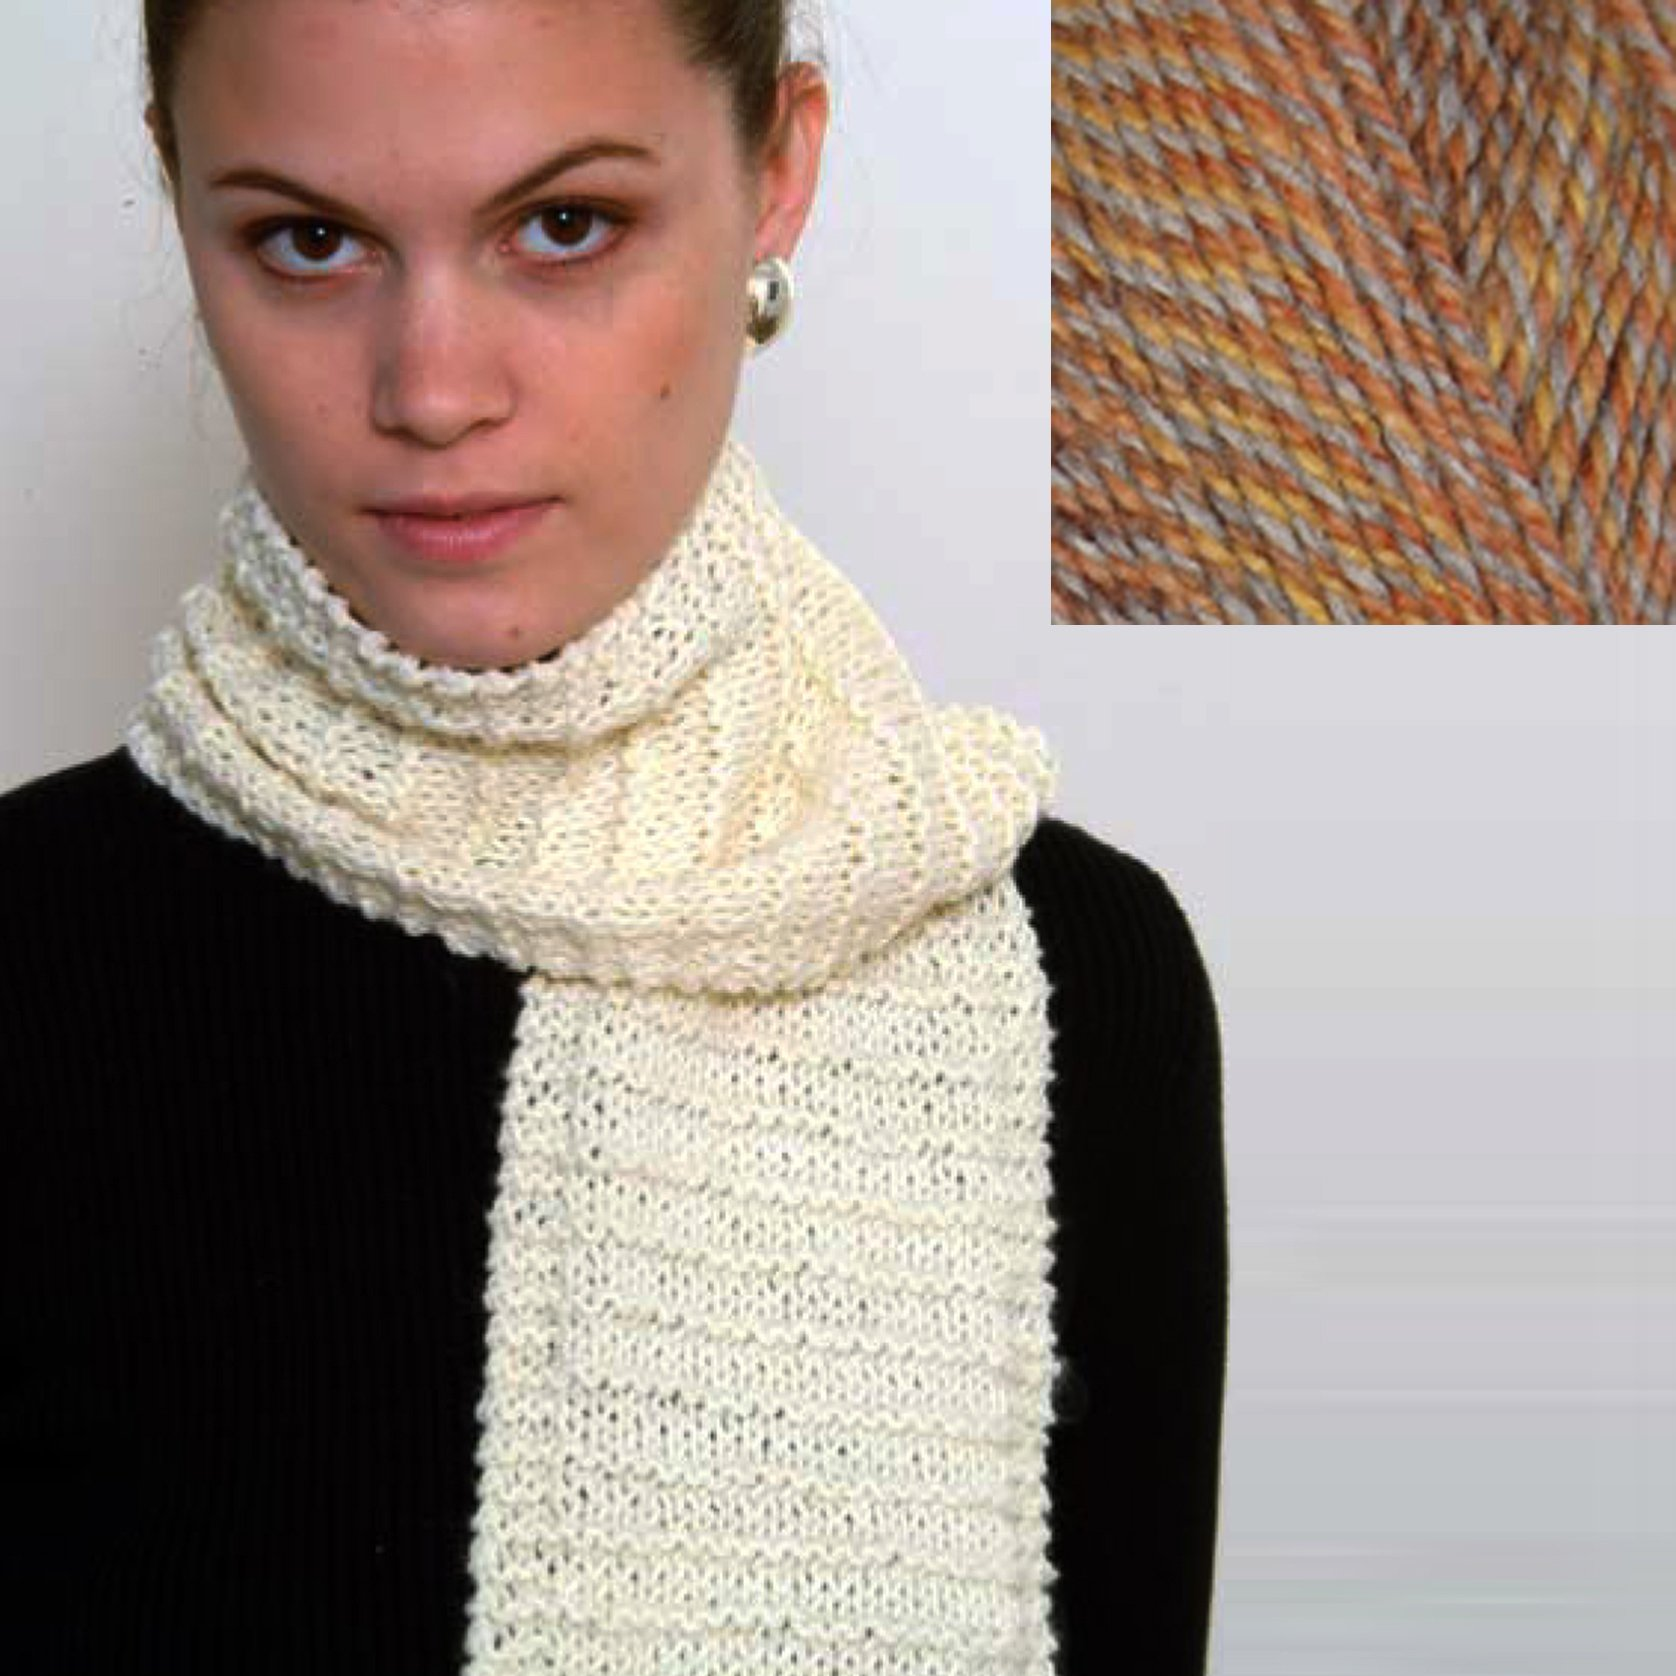 ''Beginner's Scarf'' Knit Kit with Encore Worsted COLORSPUN Yarn - COPPER DRIFT